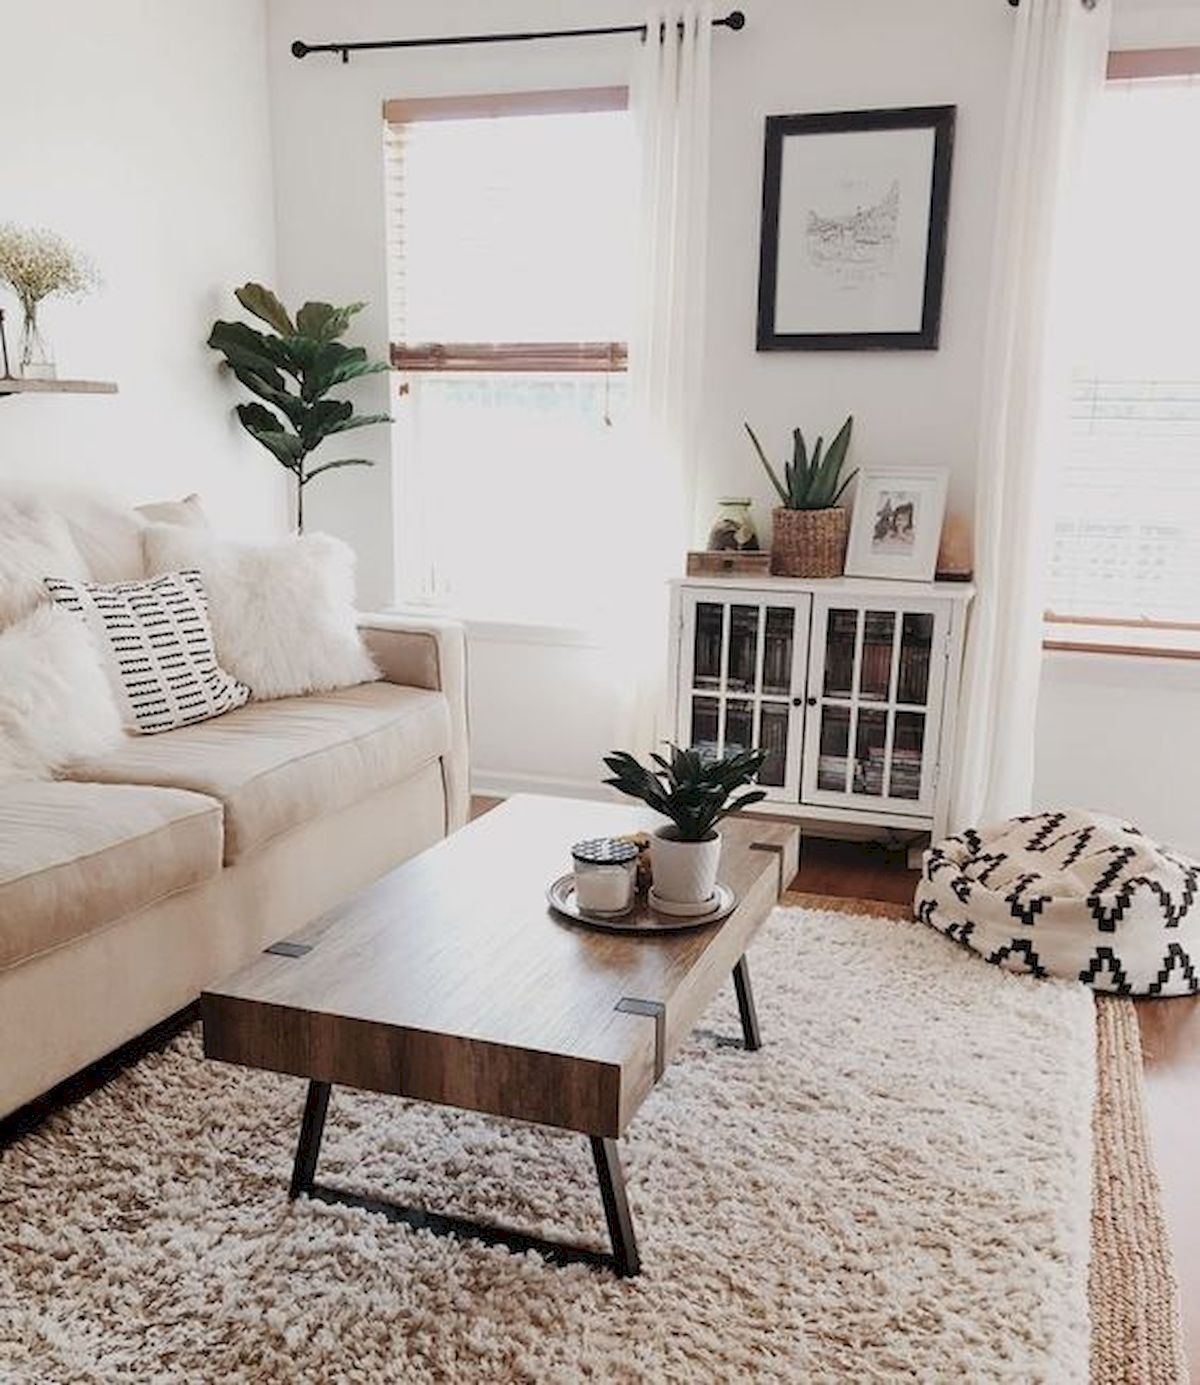 57 Cozy Living Room Apartment Decor Ideas With Images Living